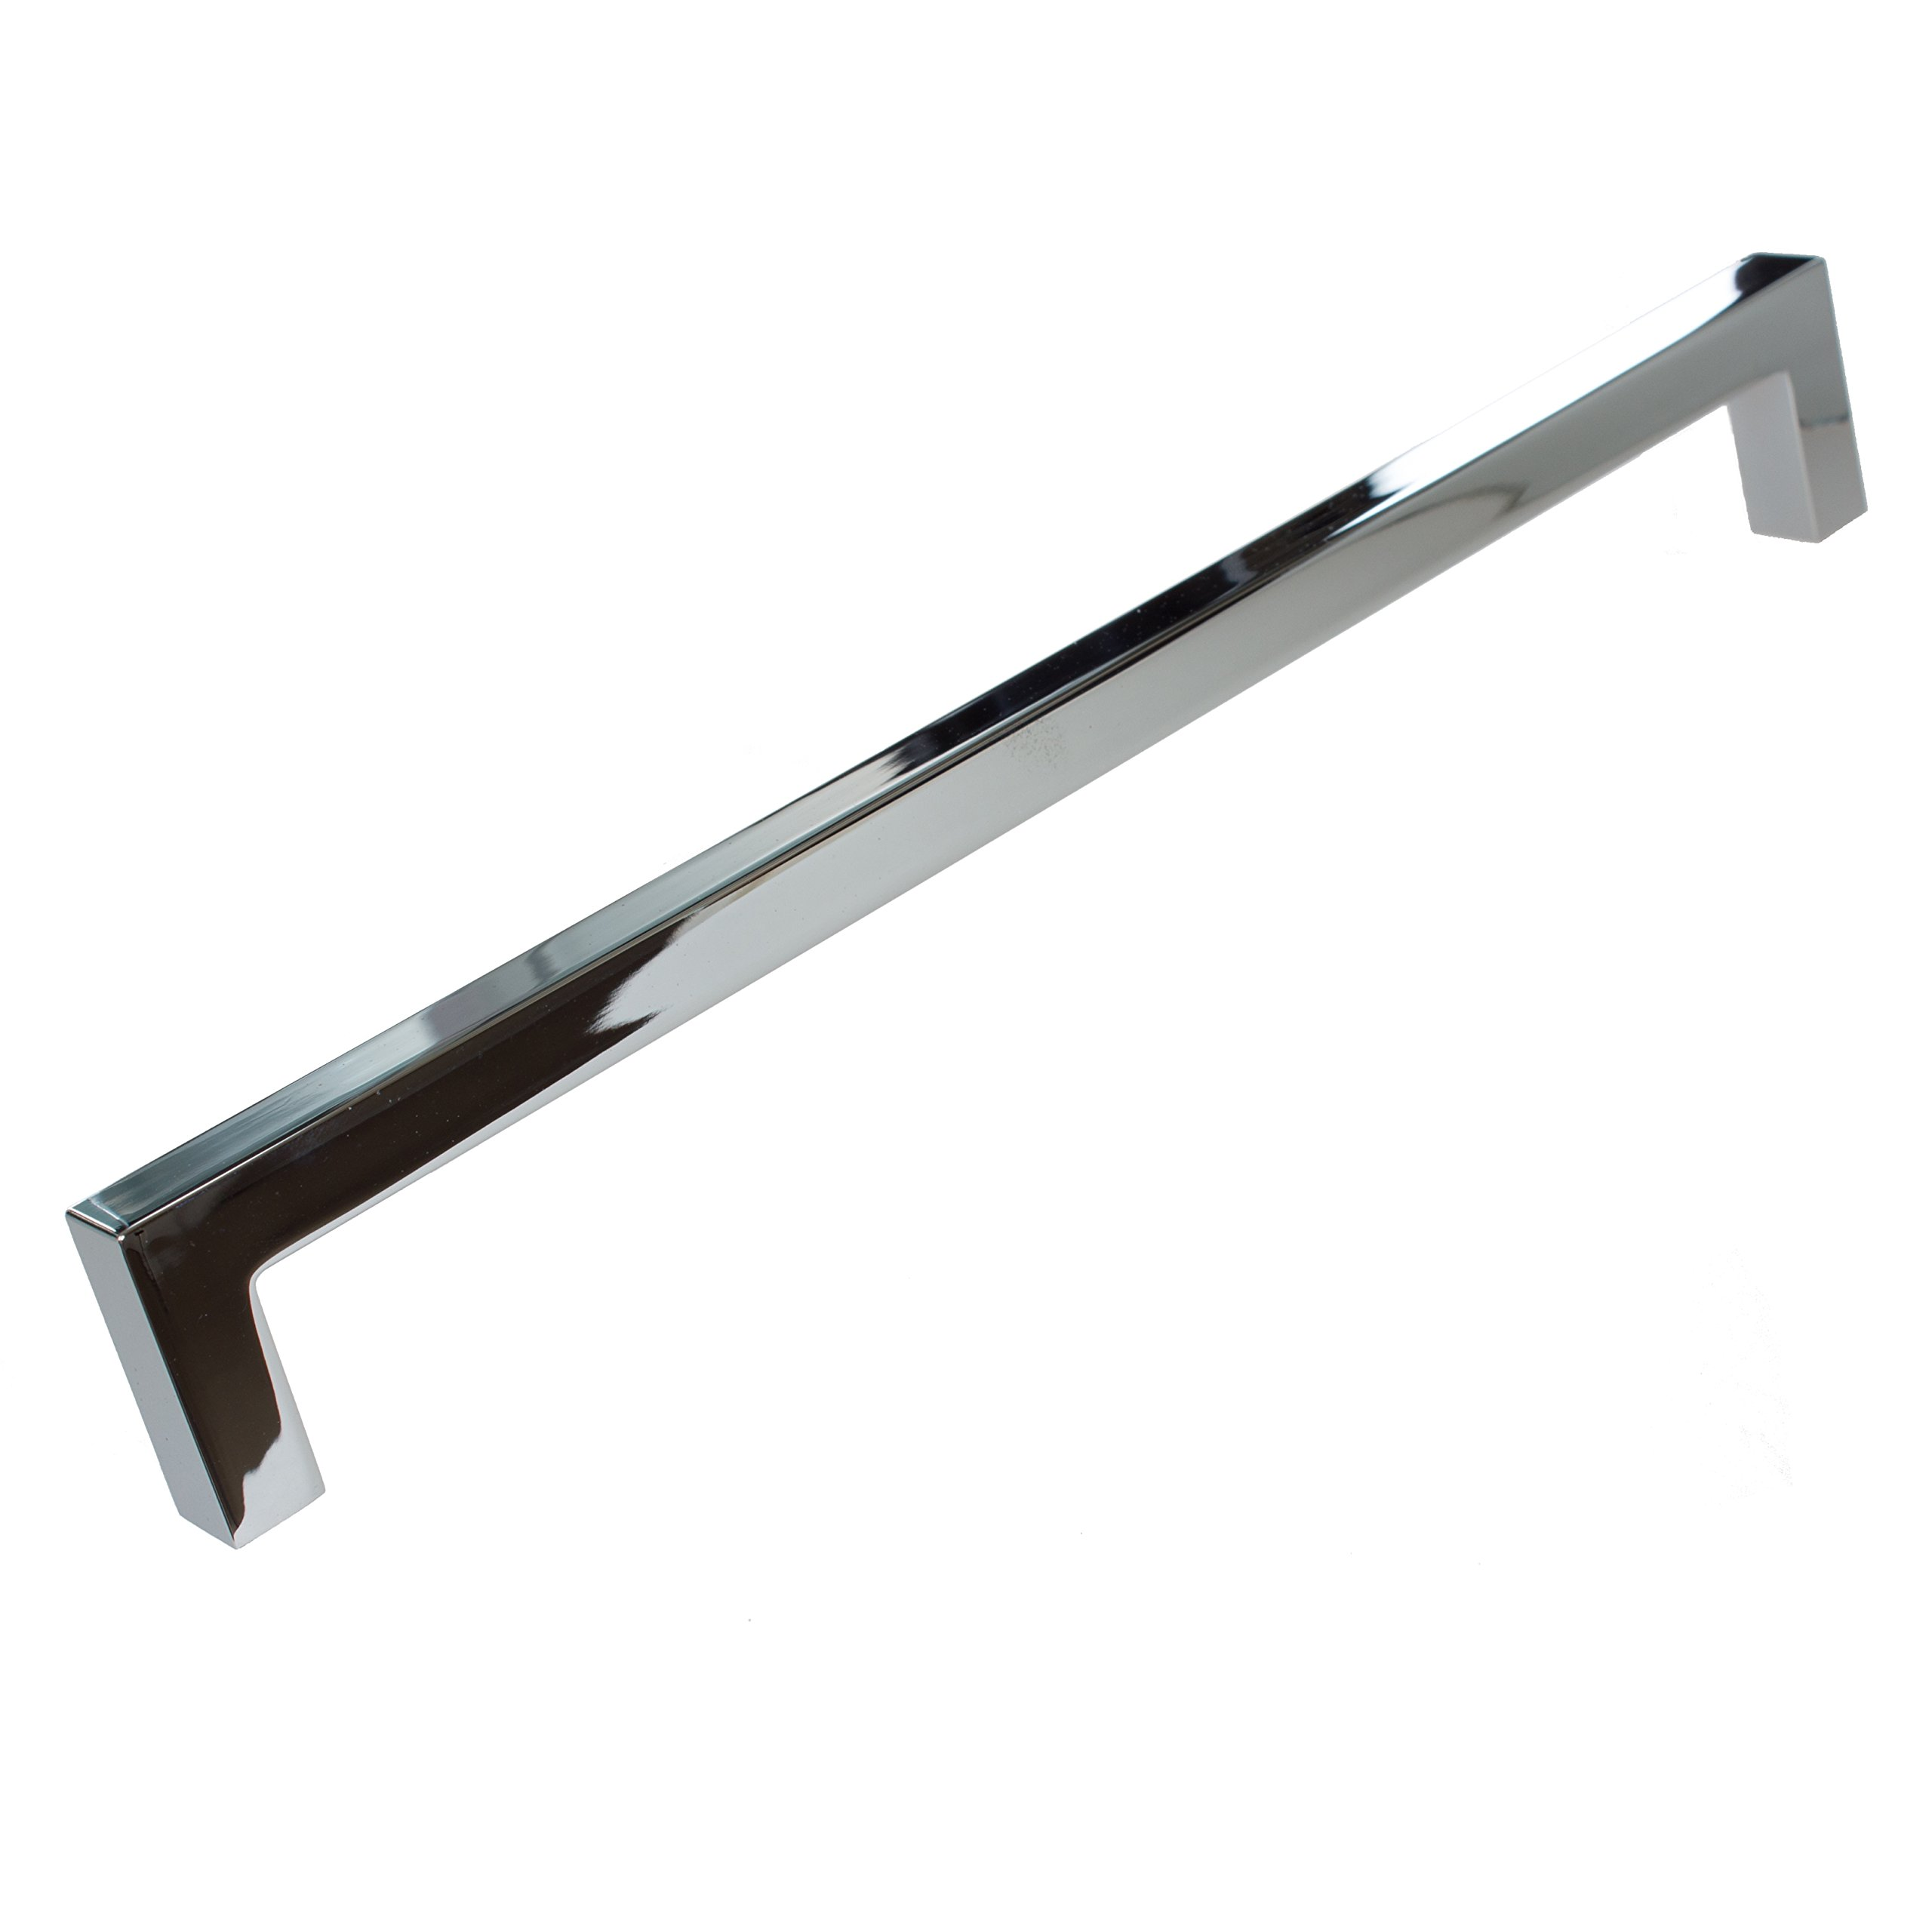 GlideRite Hardware 21683-224-PC-50 Solid Square Slim Cabinet Bar Pulls, 50 Pack, 8.75'', Polished Chrome